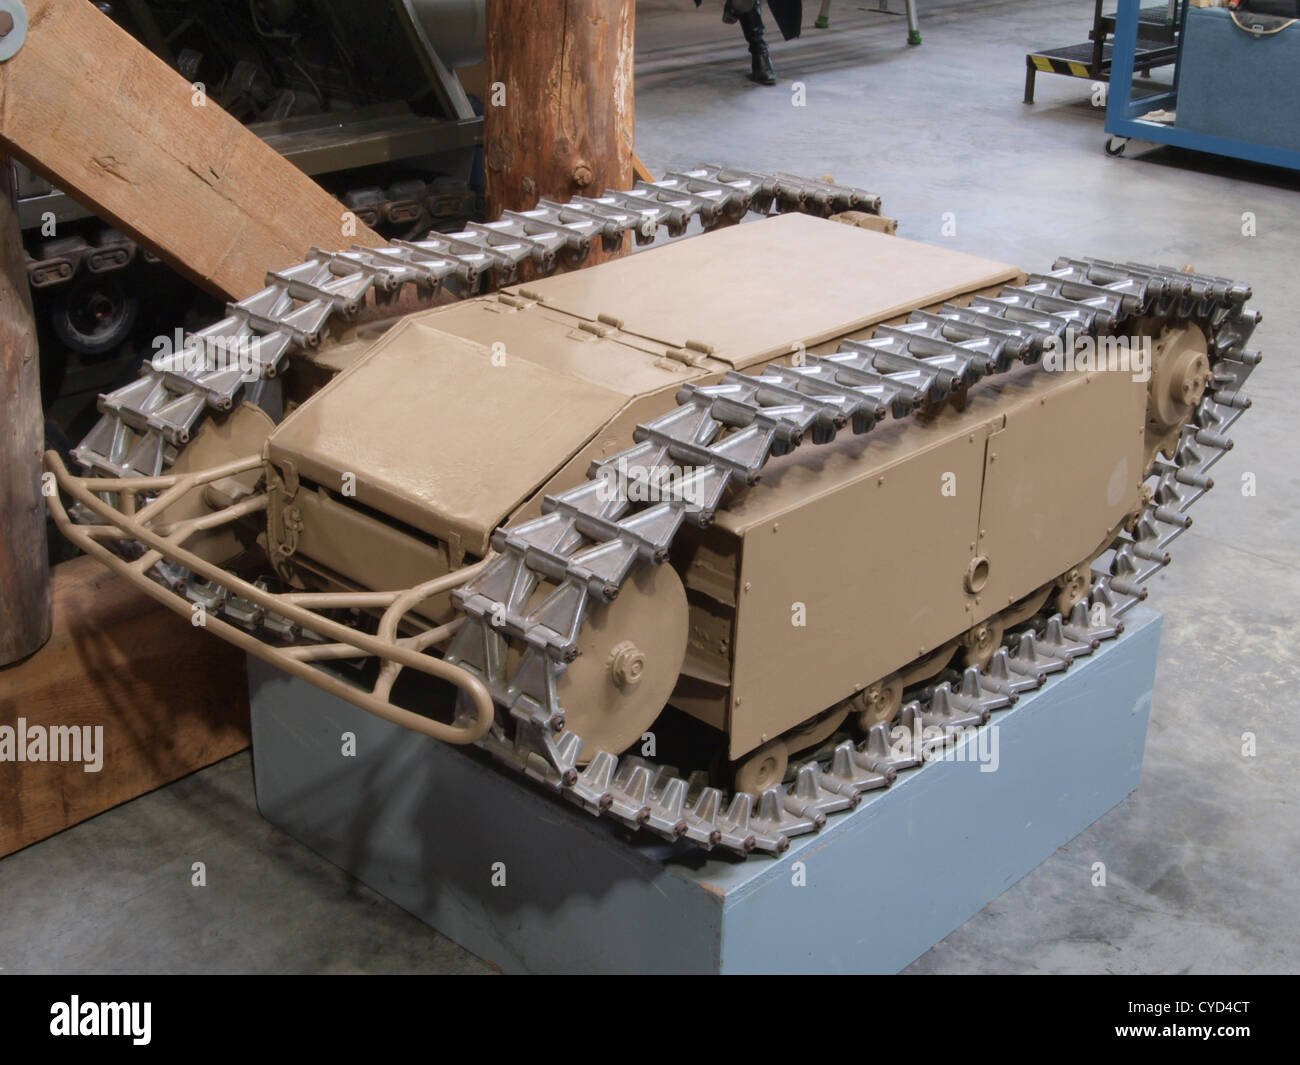 Armored Sd Kfz Stock Photos & Armored Sd Kfz Stock Images